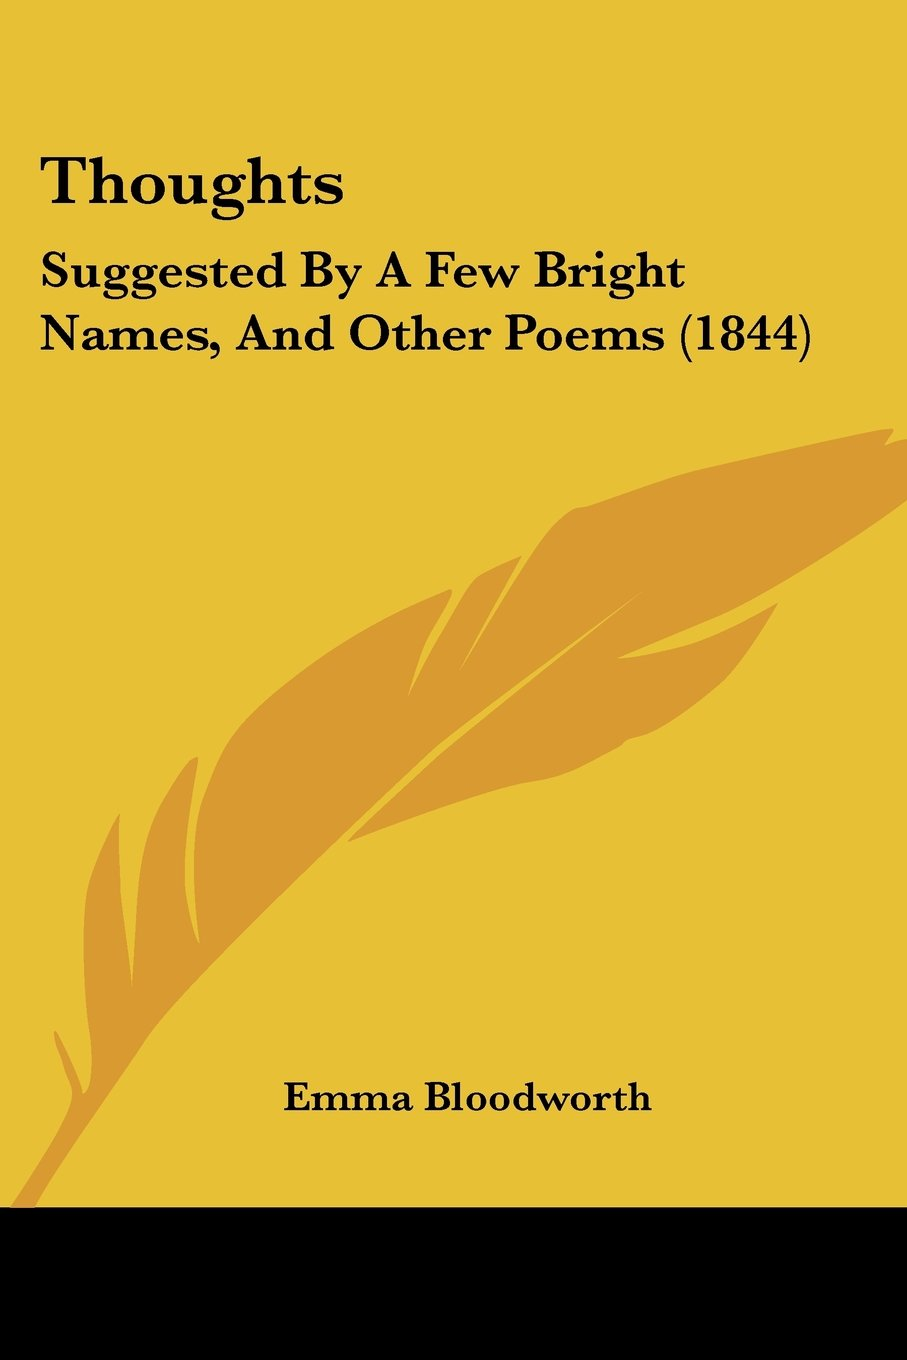 Download Thoughts: Suggested By A Few Bright Names, And Other Poems (1844) ebook